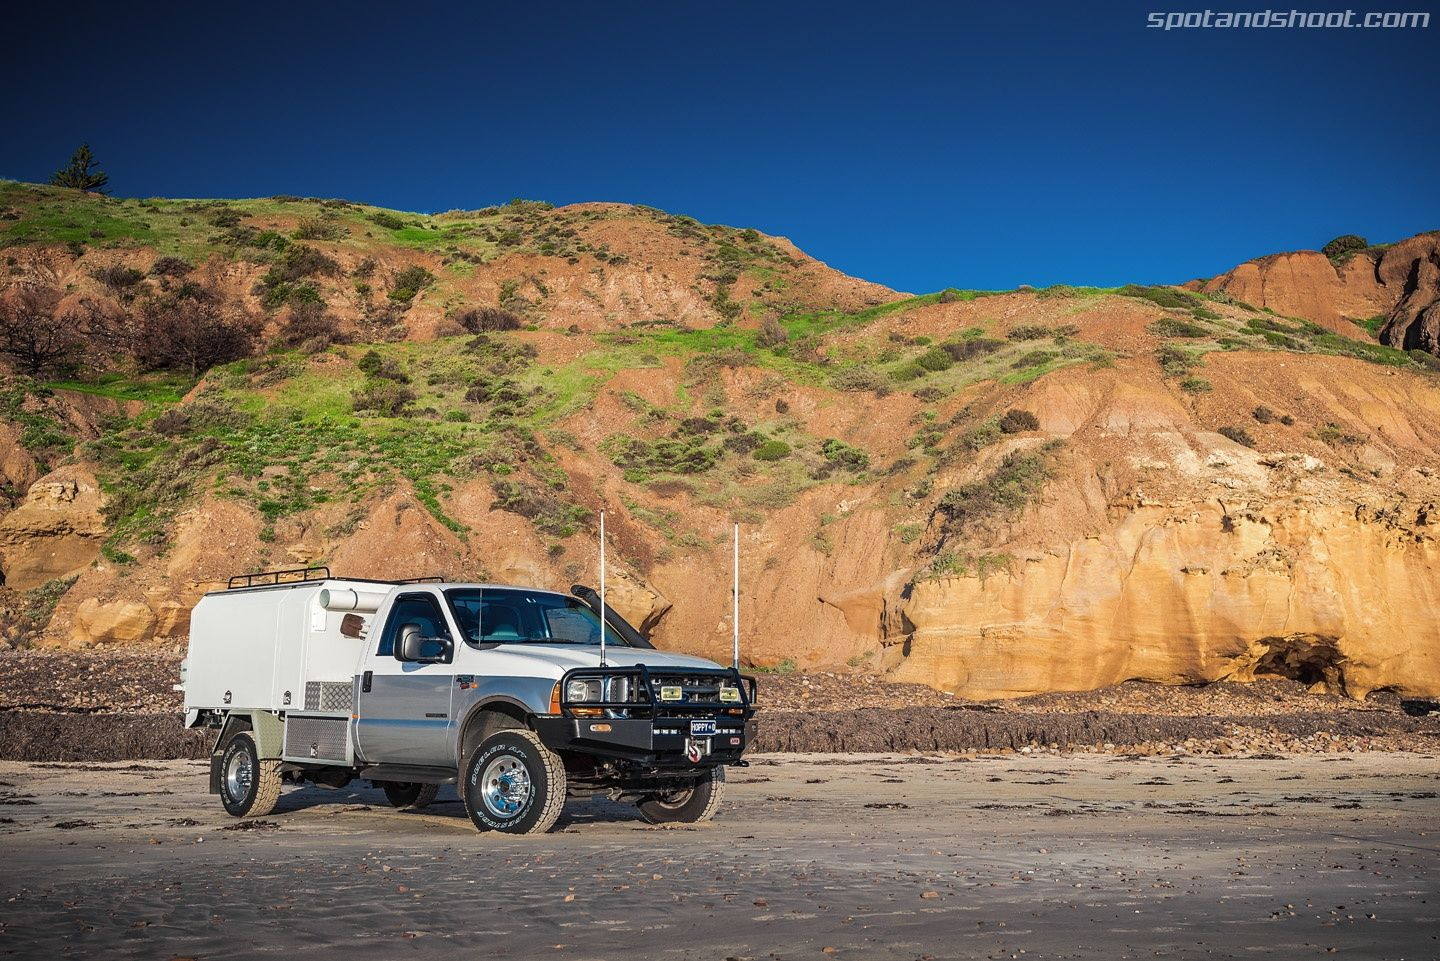 Ford F-250 Heavy Duty by Andrey Moisseyev on 500px